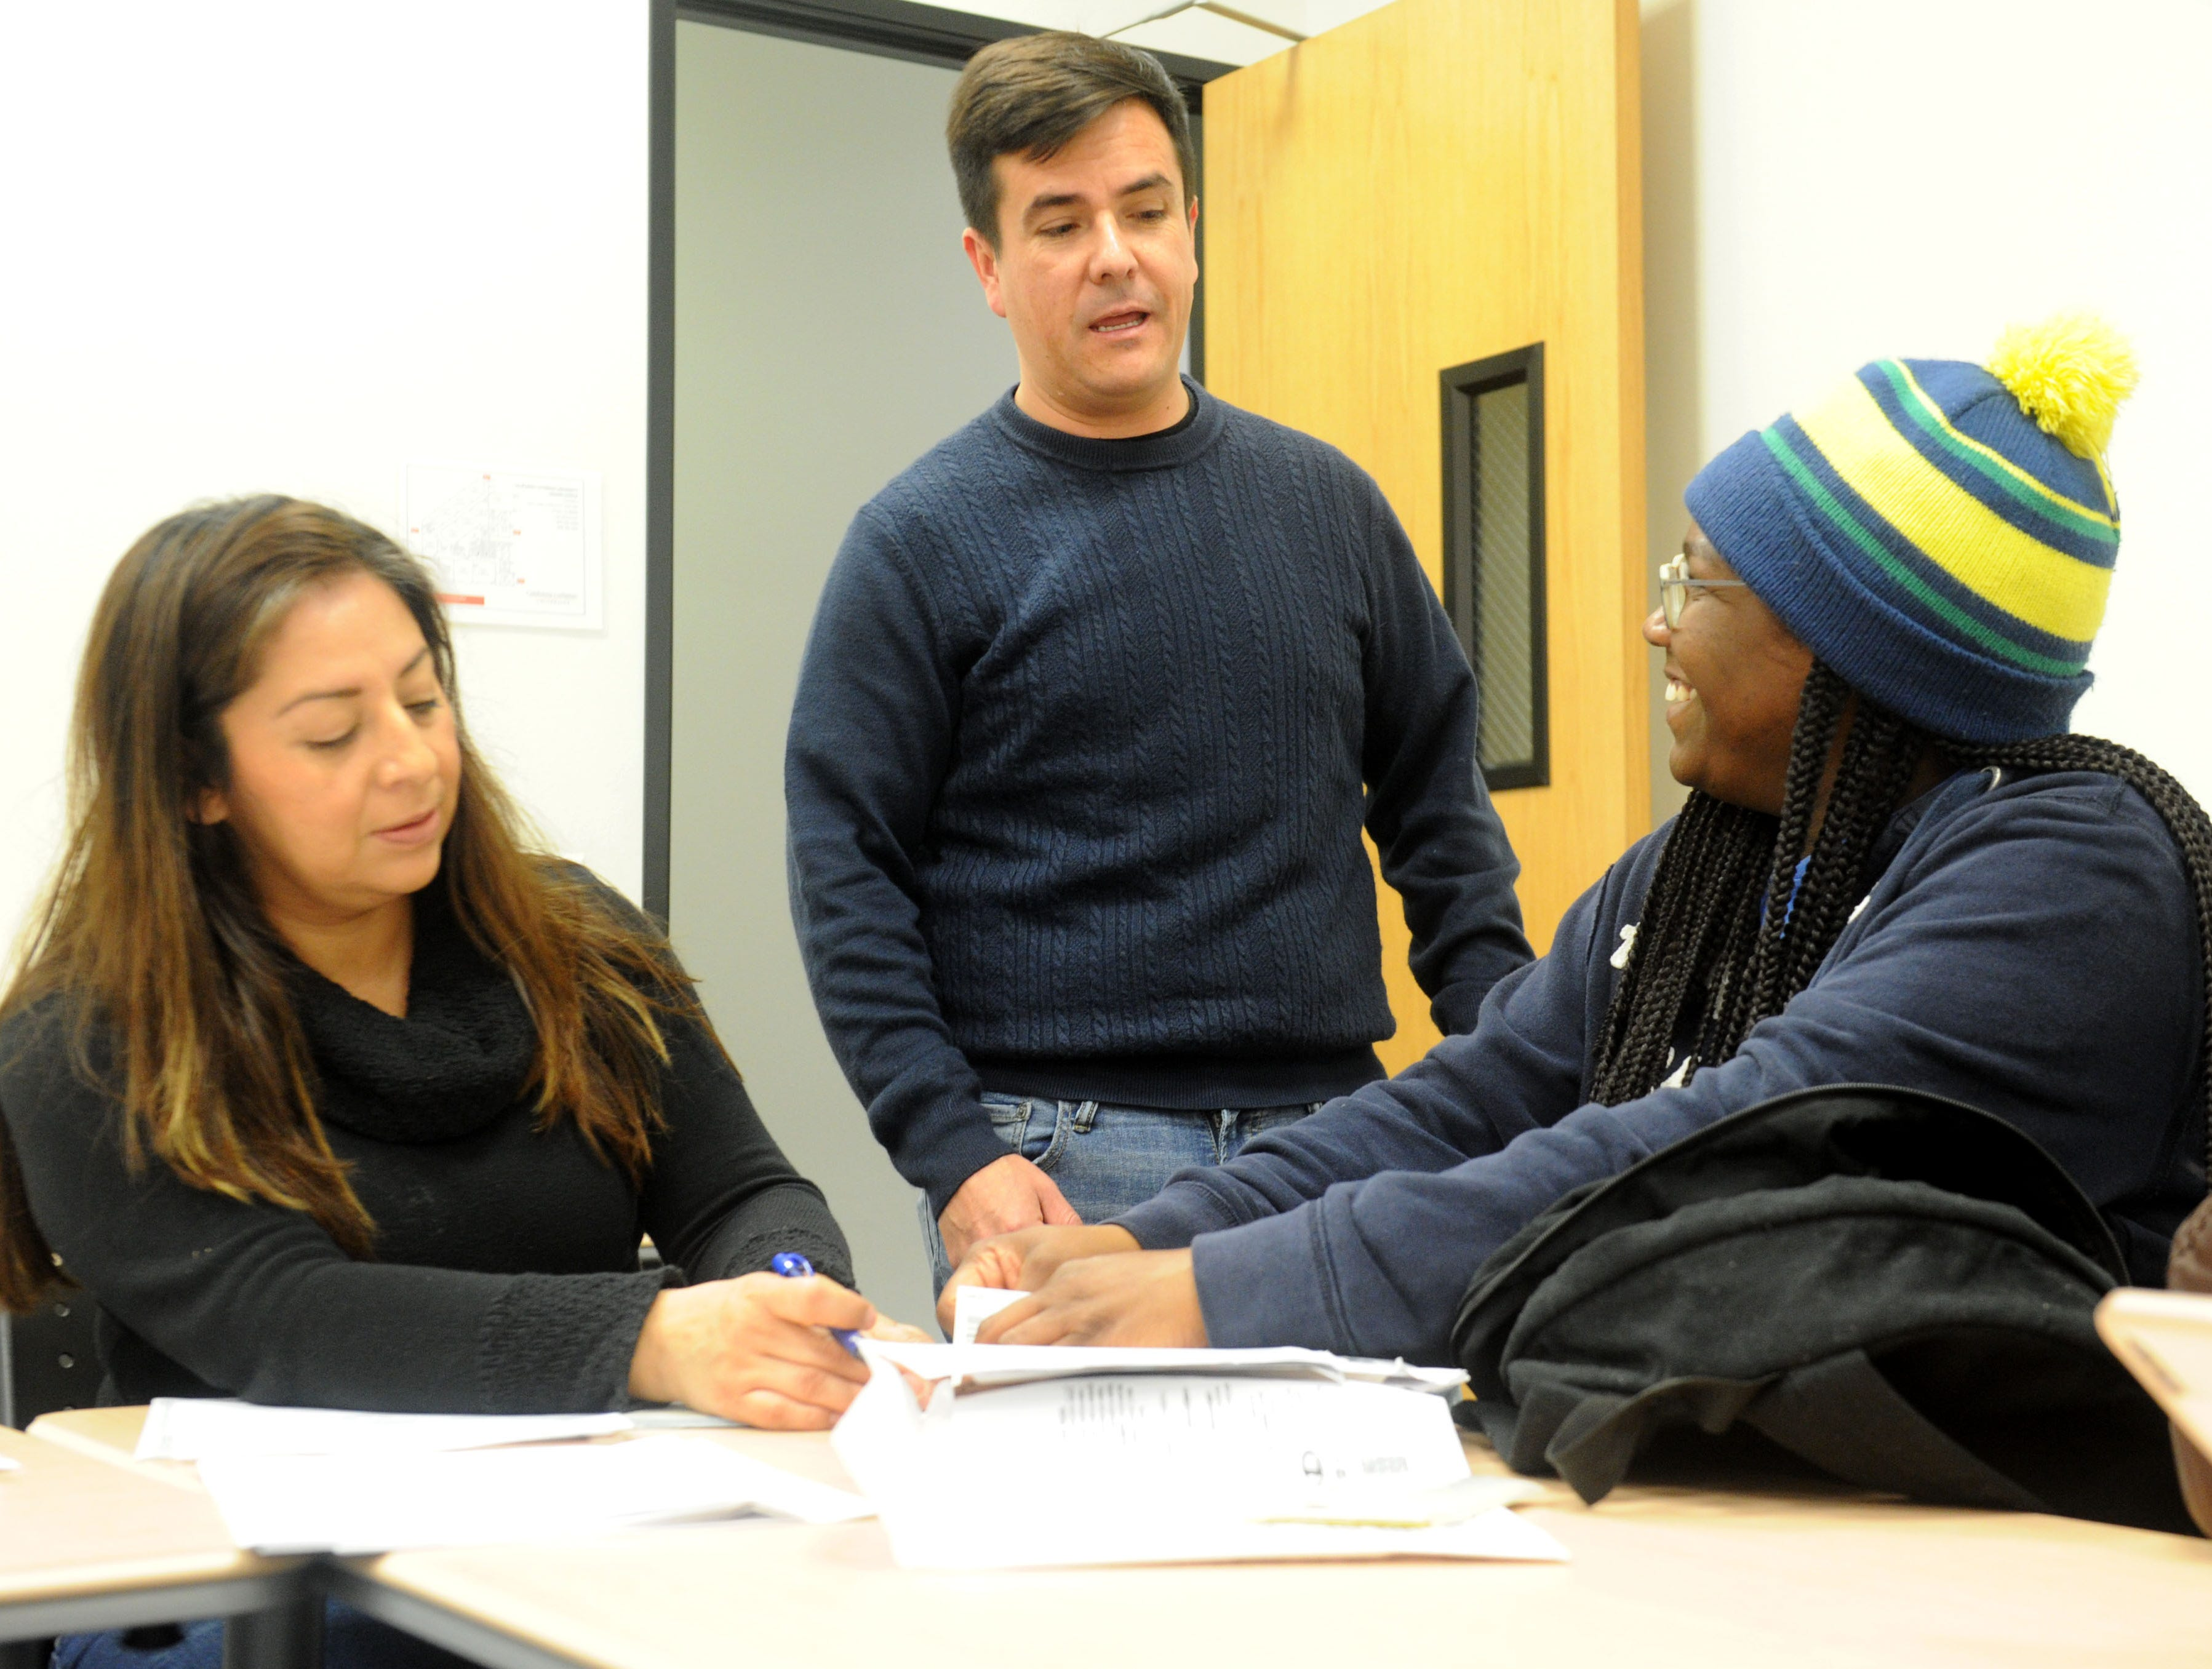 From left, Ayde Almaraz and Efrain De Santos help Frances Hart with her taxes  as part of the the United Way's Volunteer Income Tax Assistance program. The program is a free service to households that earned less than $55,000 last year.